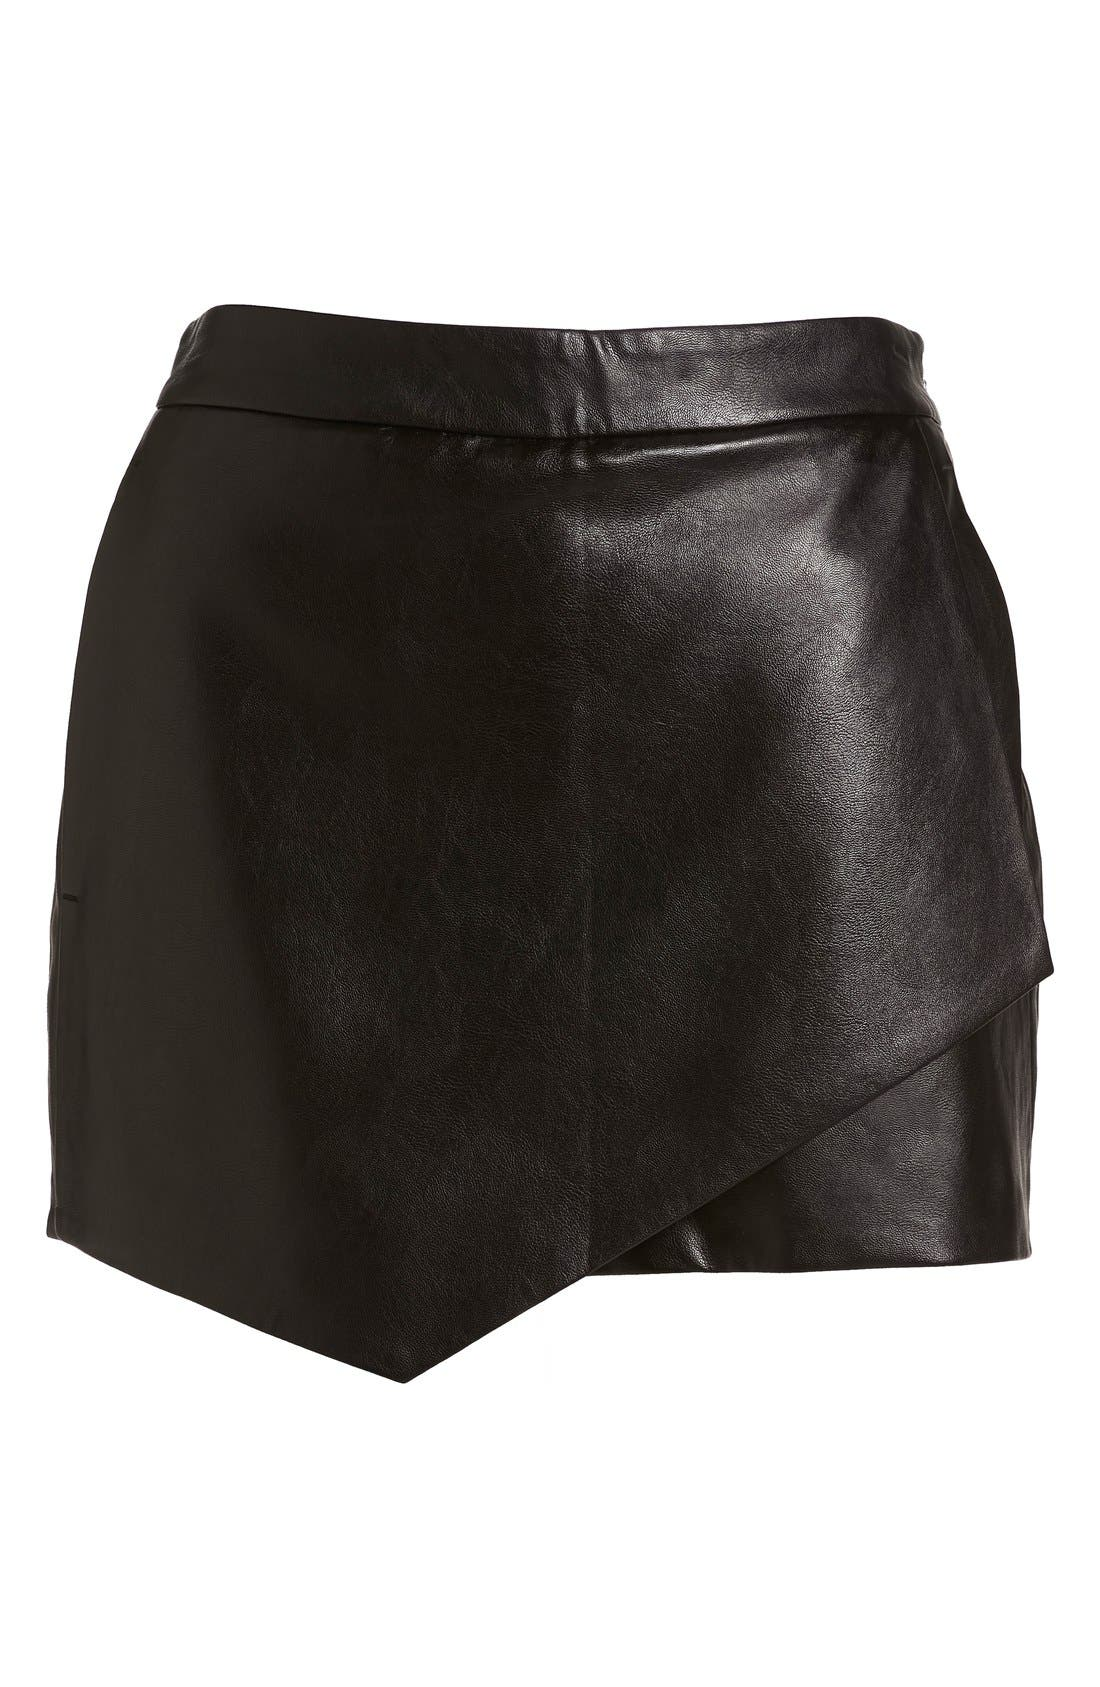 Main Image - izzue Faux Leather Mini Shorts (Women)